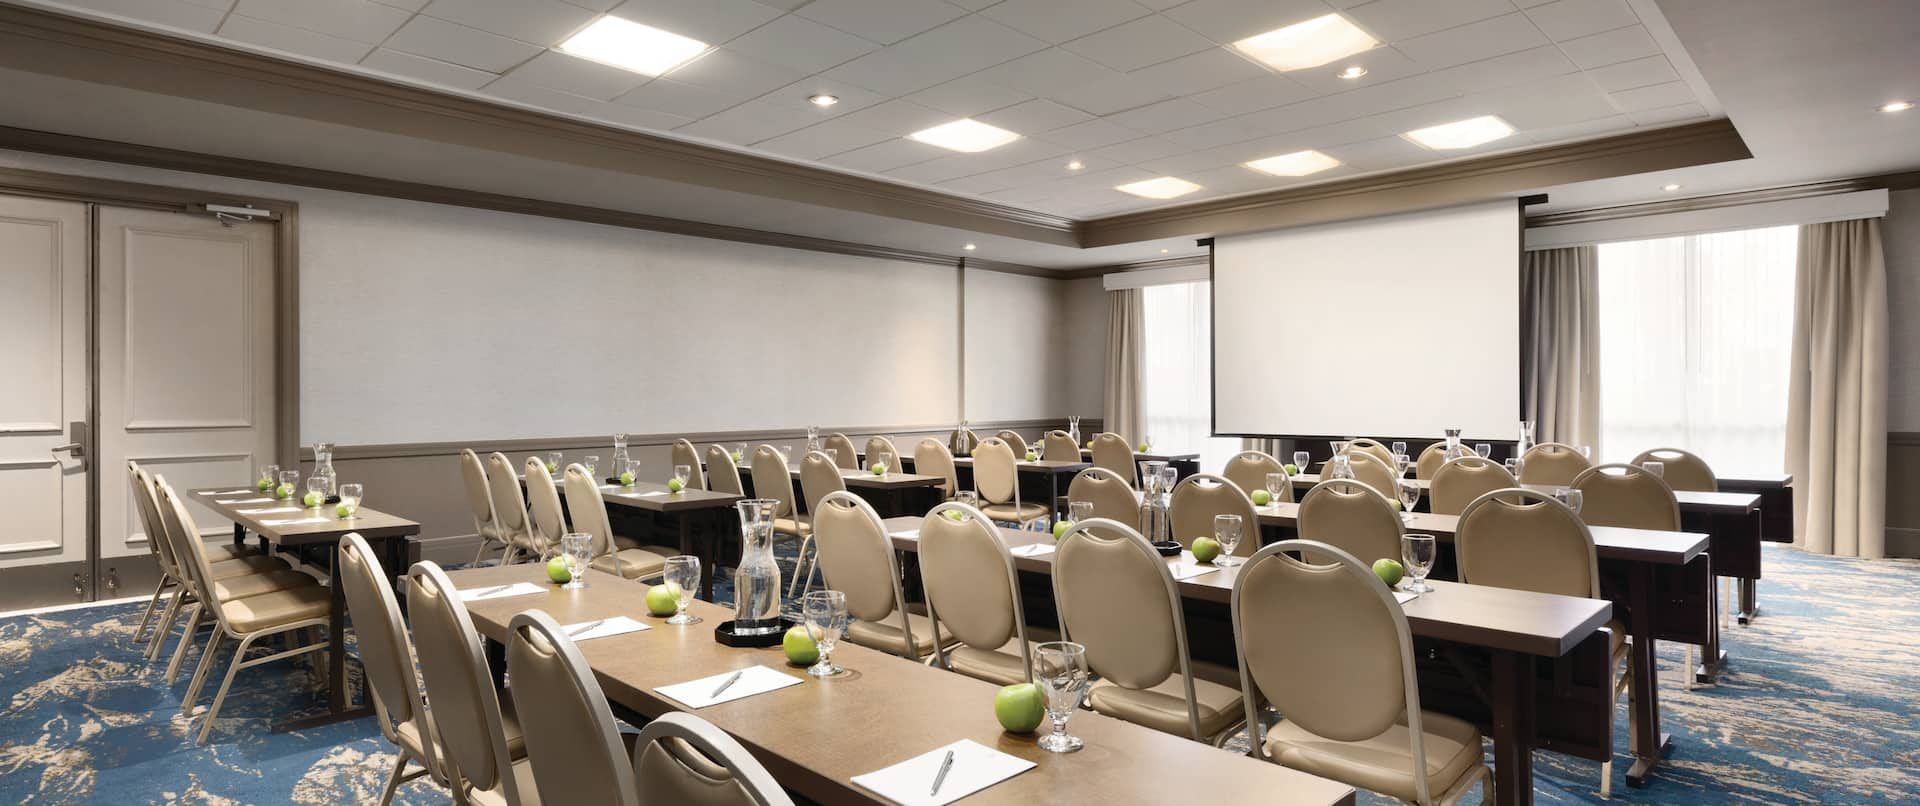 Meeting Room Classroom Setup with Projector Screen